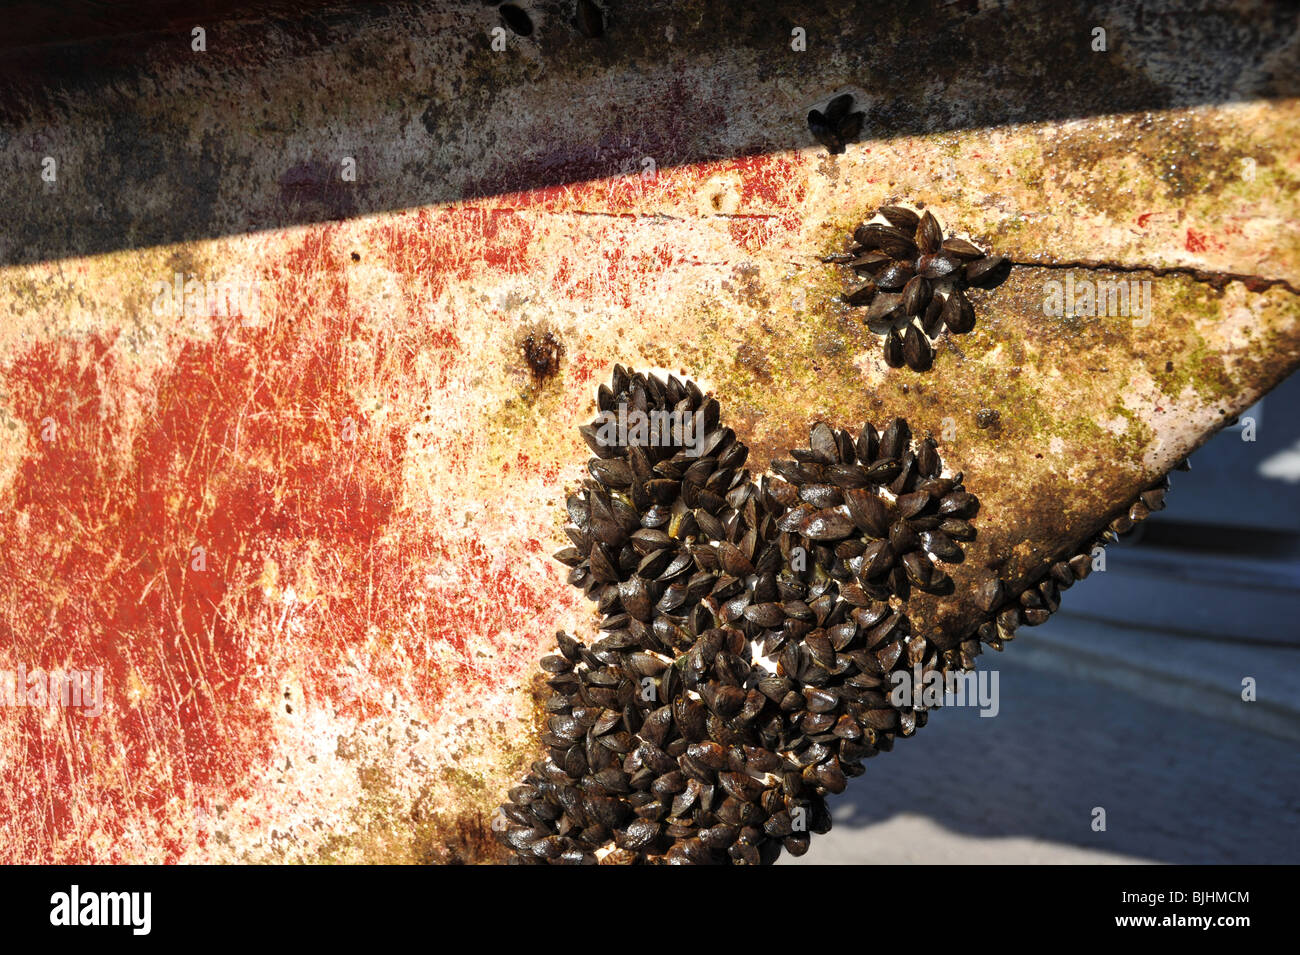 Close up image of the underside of a boats hull that shows the growth of mussels and barnacles. This boat was in - Stock Image